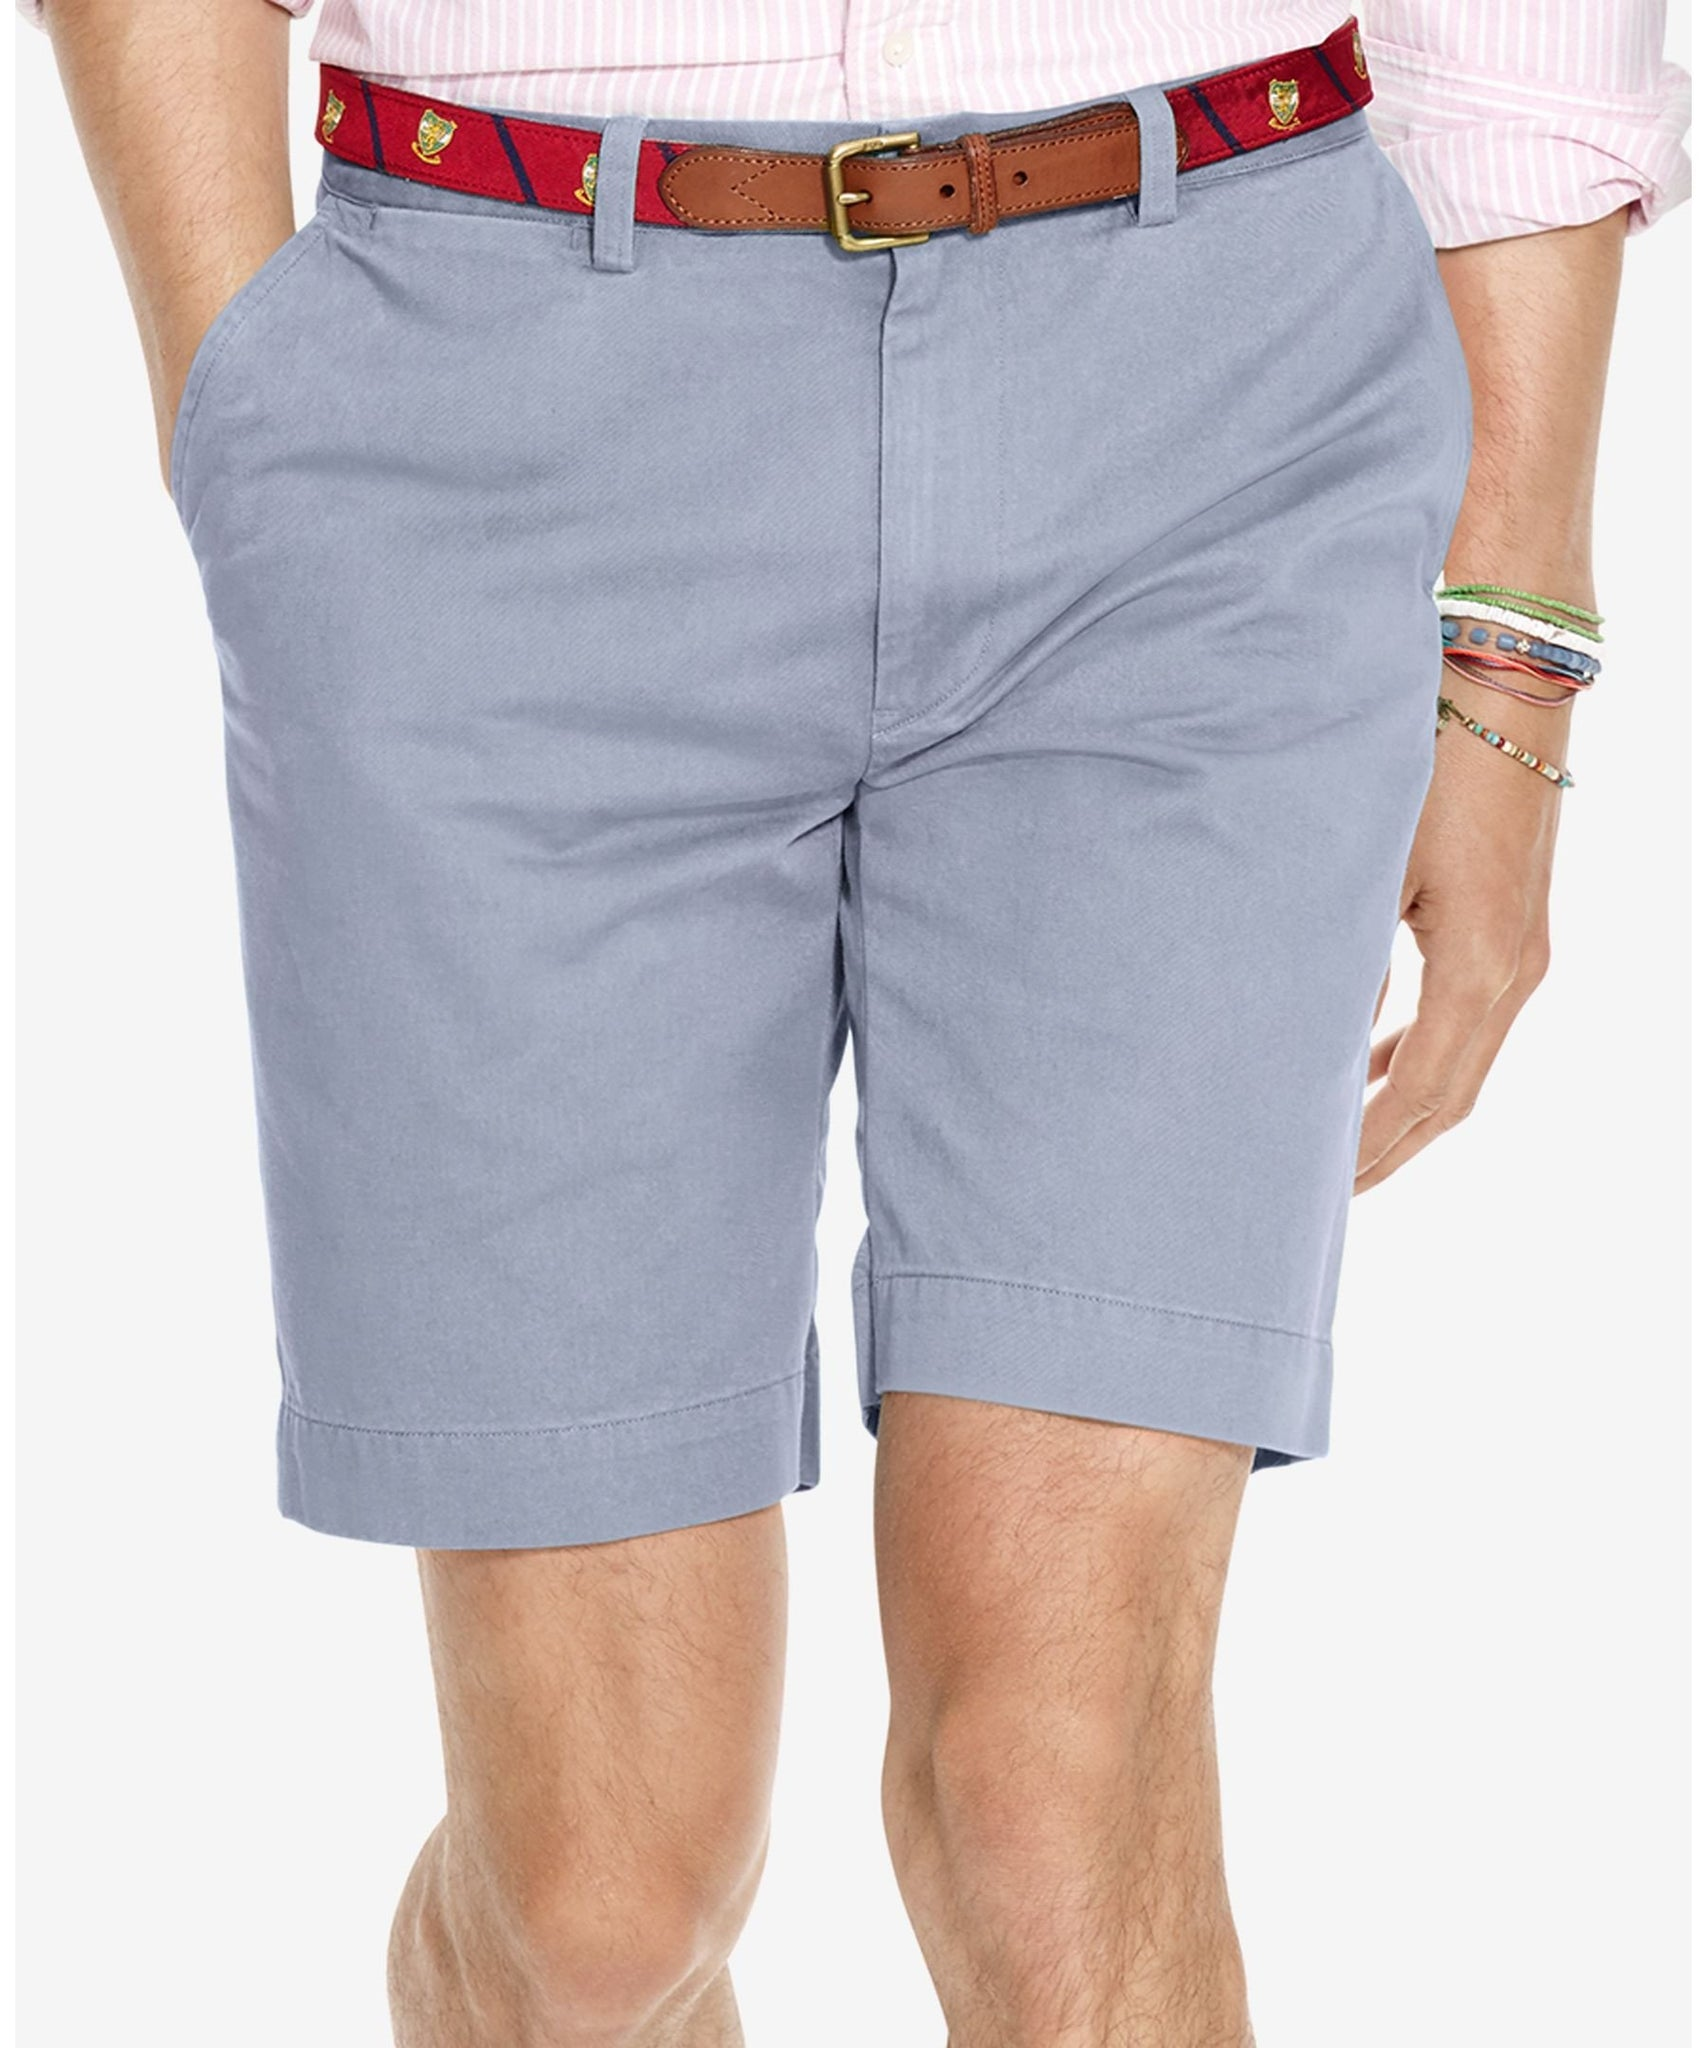 "Polo Ralph Lauren Blue/Grey 9"" Classic Fit Flat-Front Chino Short"